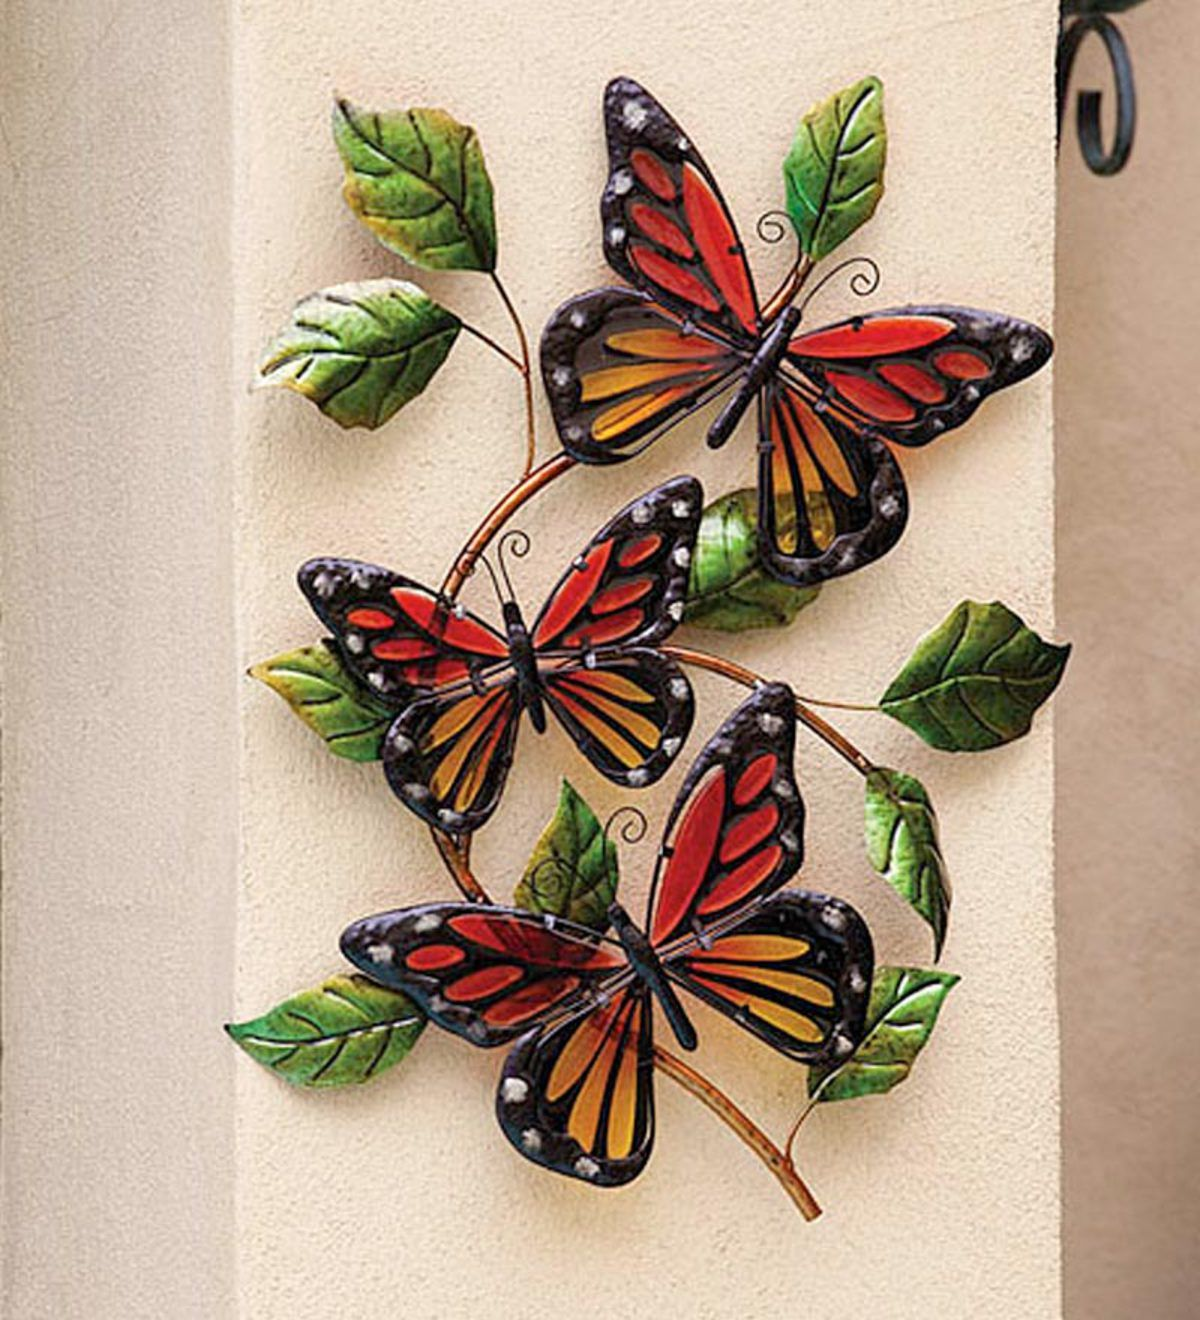 P Three Graceful Glass Monarch Butterflies Light On A Curved Leafy Branch To Add A Touch Of Spring To A Butterfly Wall Art Butterfly Wall Metal Tree Wall Art